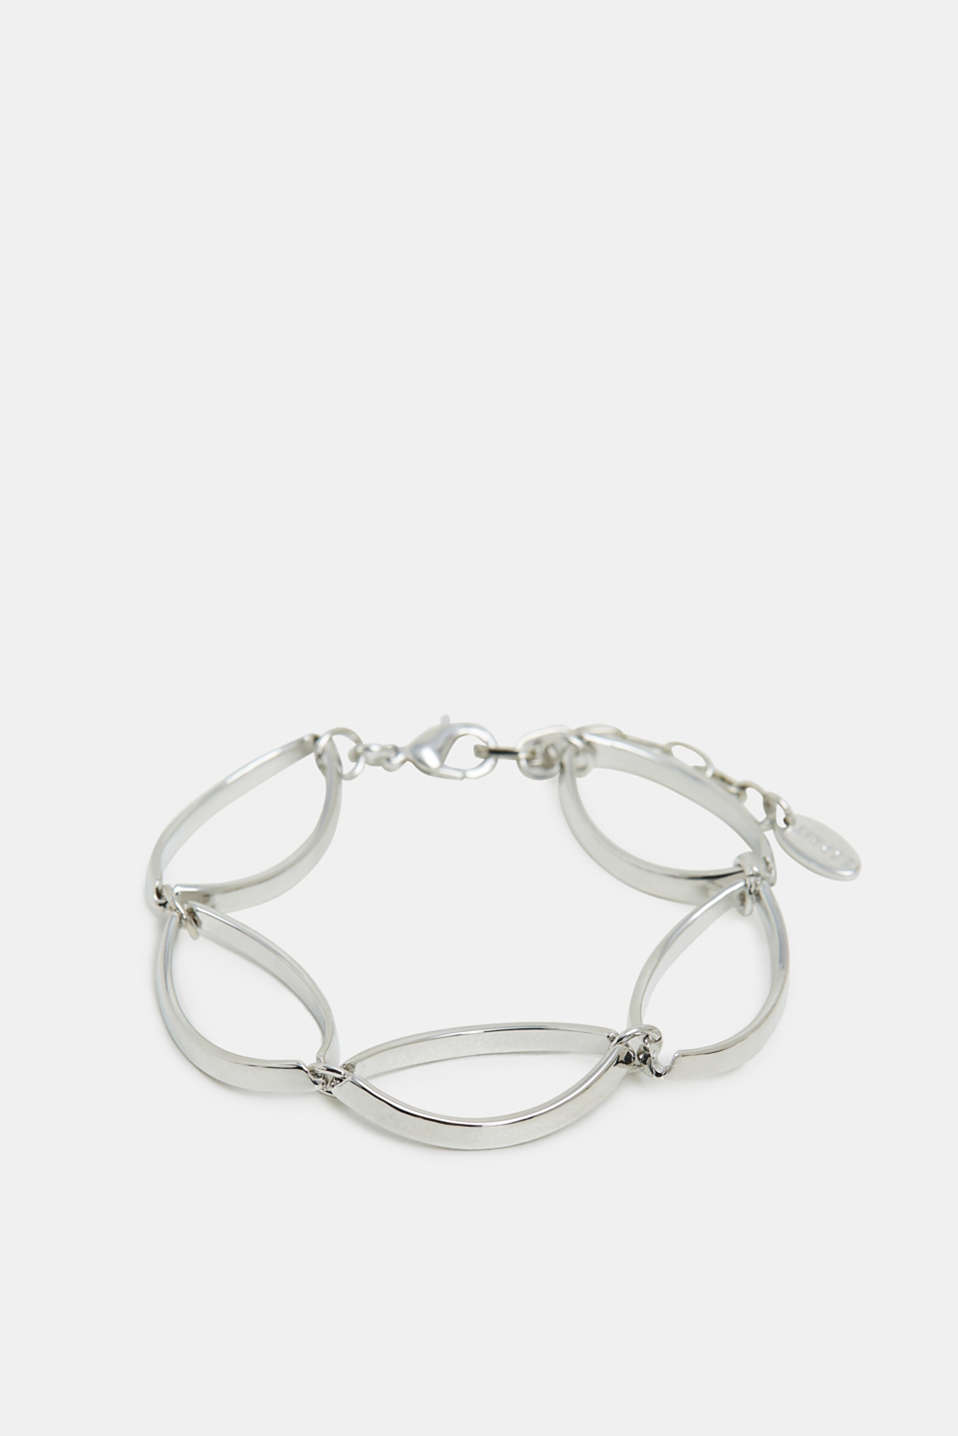 Esprit - Charming retro chain bracelet made of metal